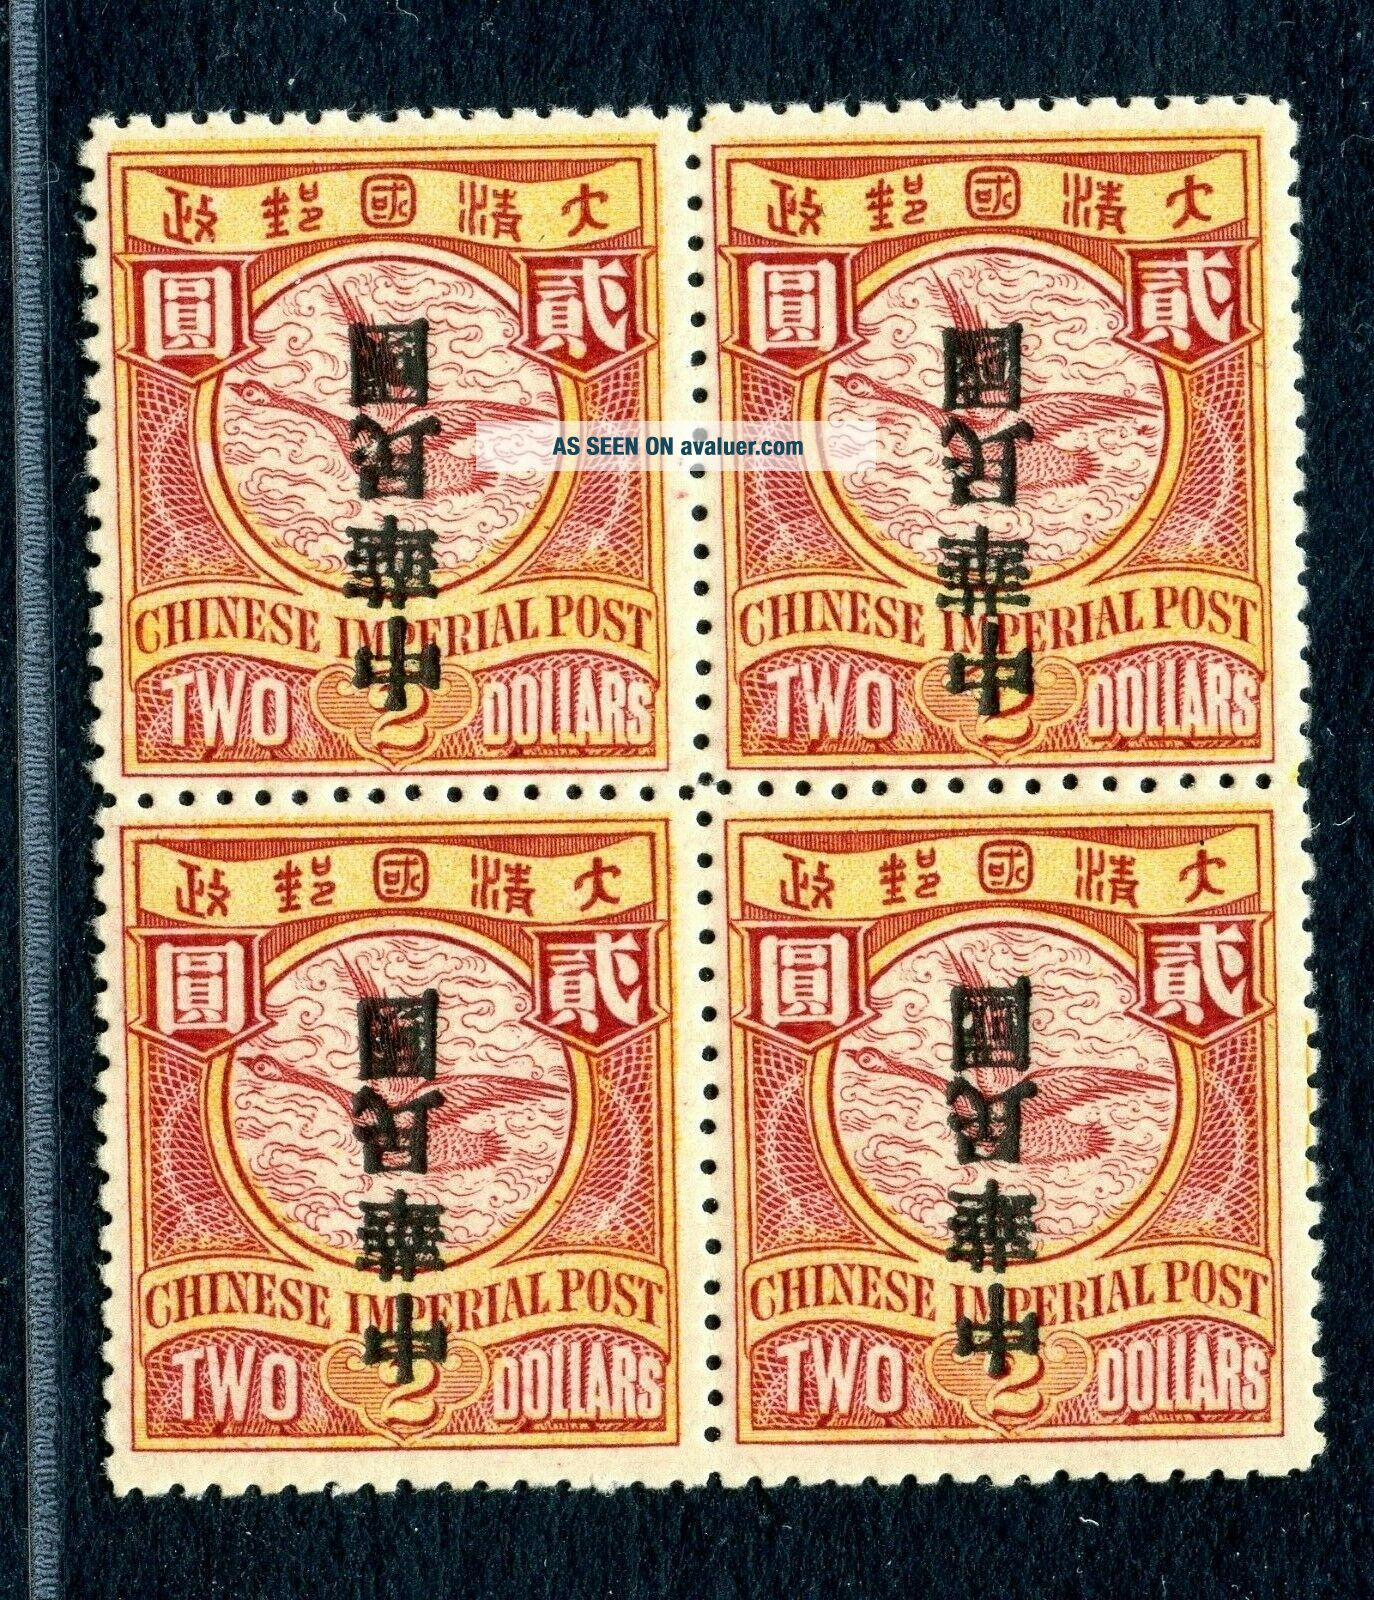 1912 ROC overprint INVERTED on Flying geese $2 block of 4 MNH Chan 165b RARE